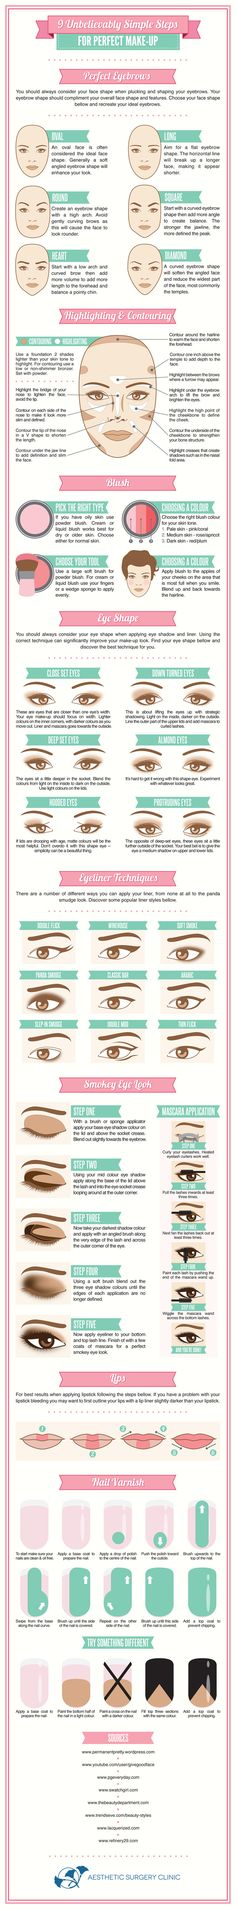 Lovely chart that covers all areas of make up and helps you pick the perfect look that will suit you and your features.